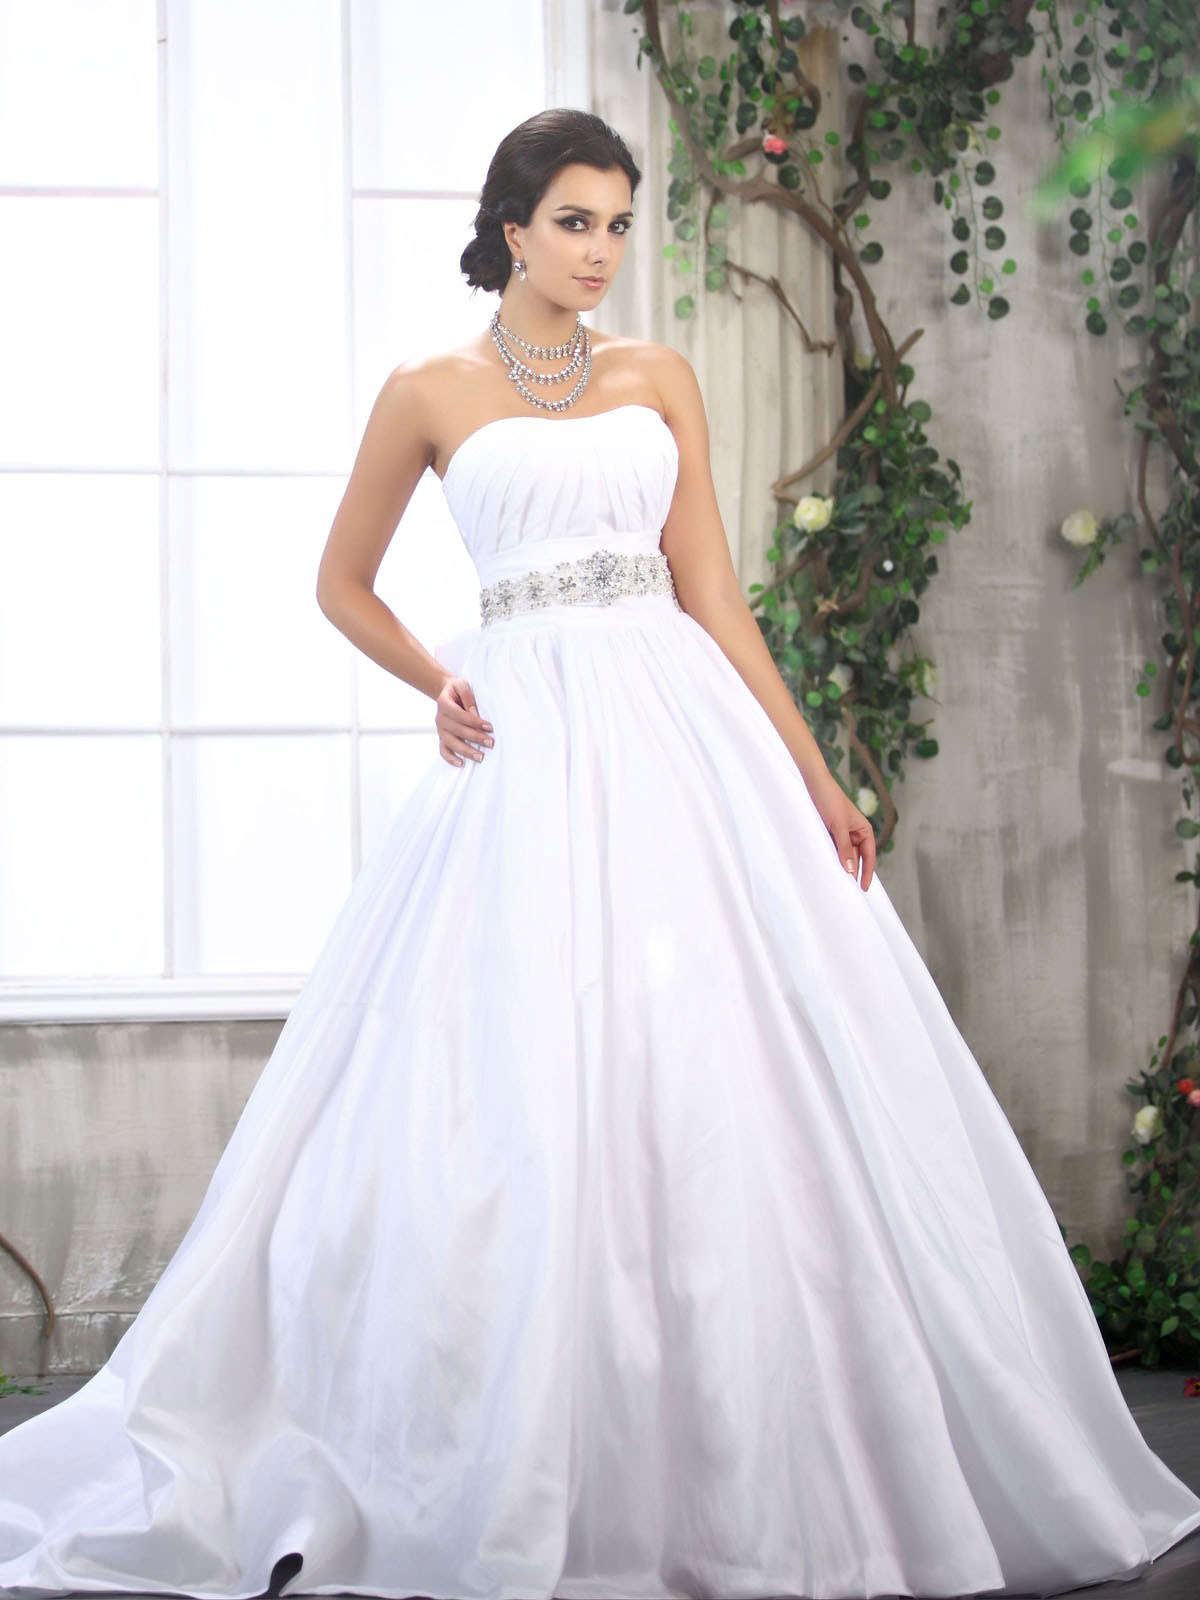 Wedding dresses cheap under 100 Inexpensive beach wedding dresses